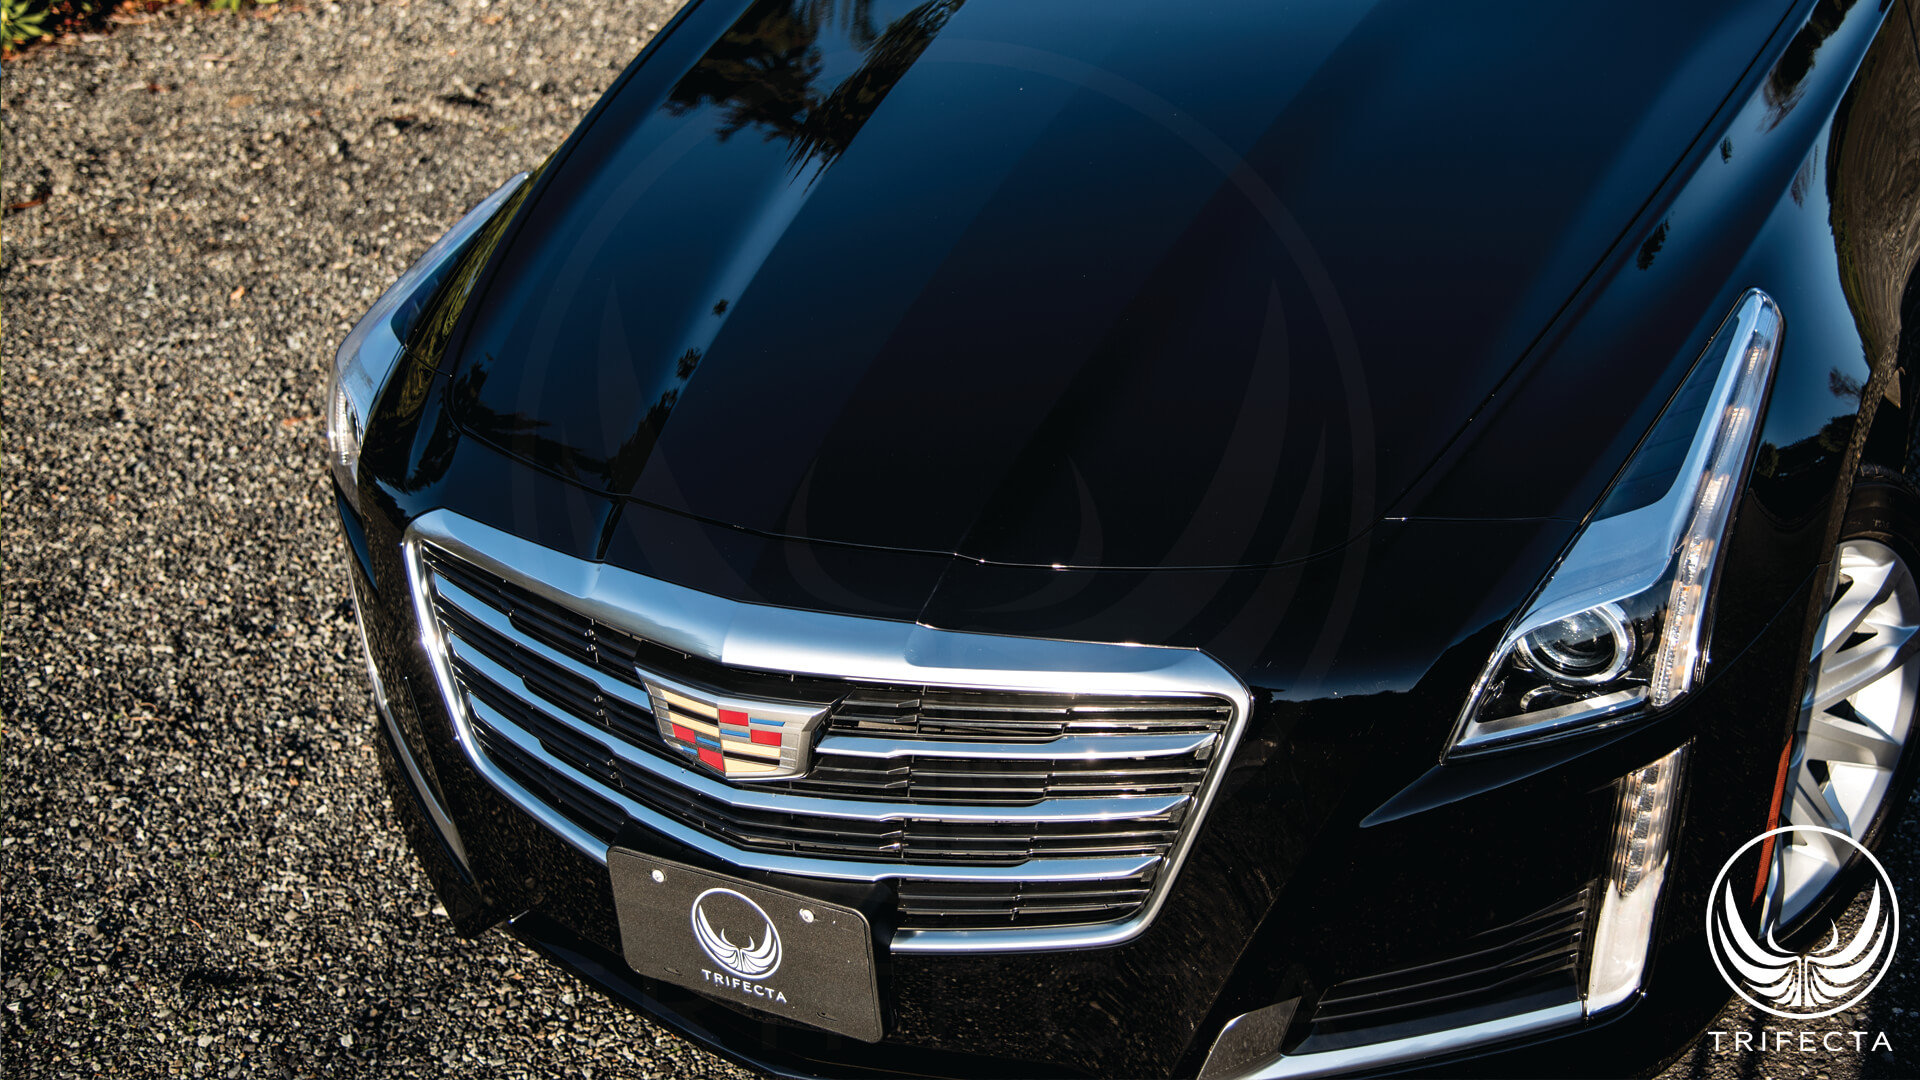 Product Review: 2014--2018 Cadillac CTS - 2.0L Turbo - Advantage